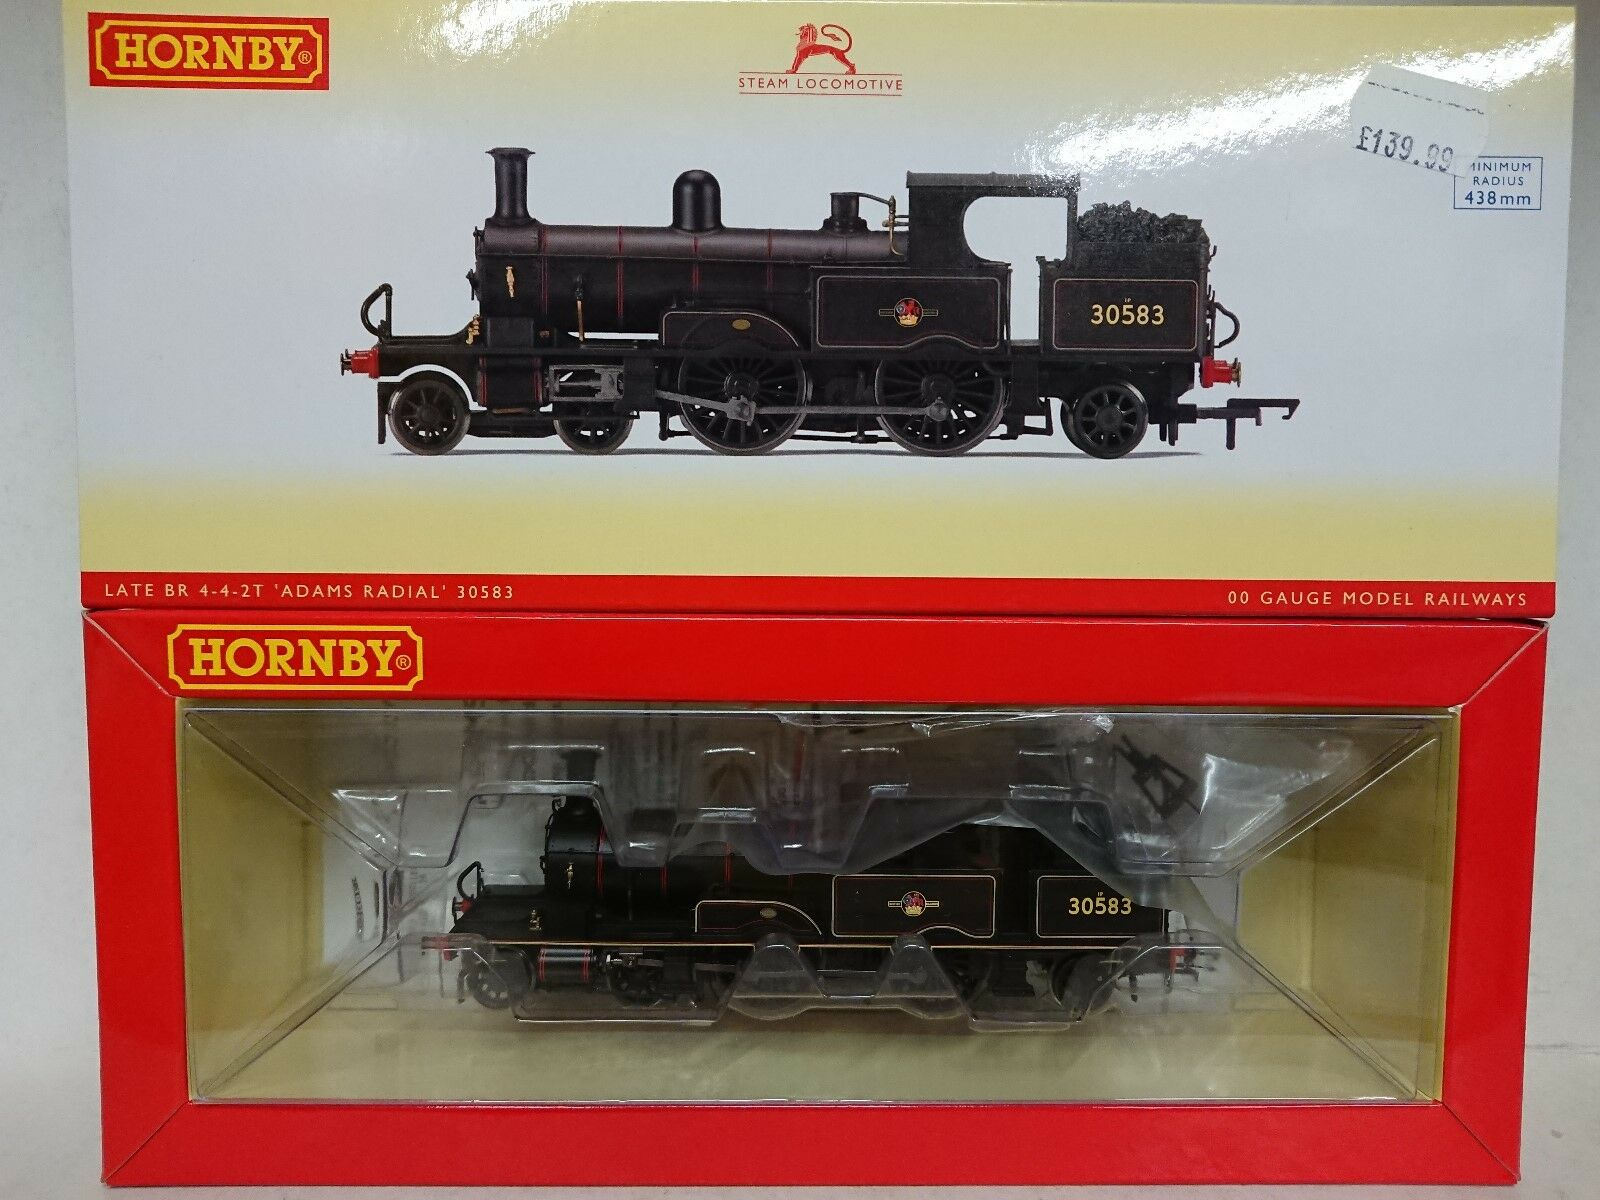 Hornby R3423 BR Late 442T ADAMS RADIAL 30583 DCC Ready nuovo